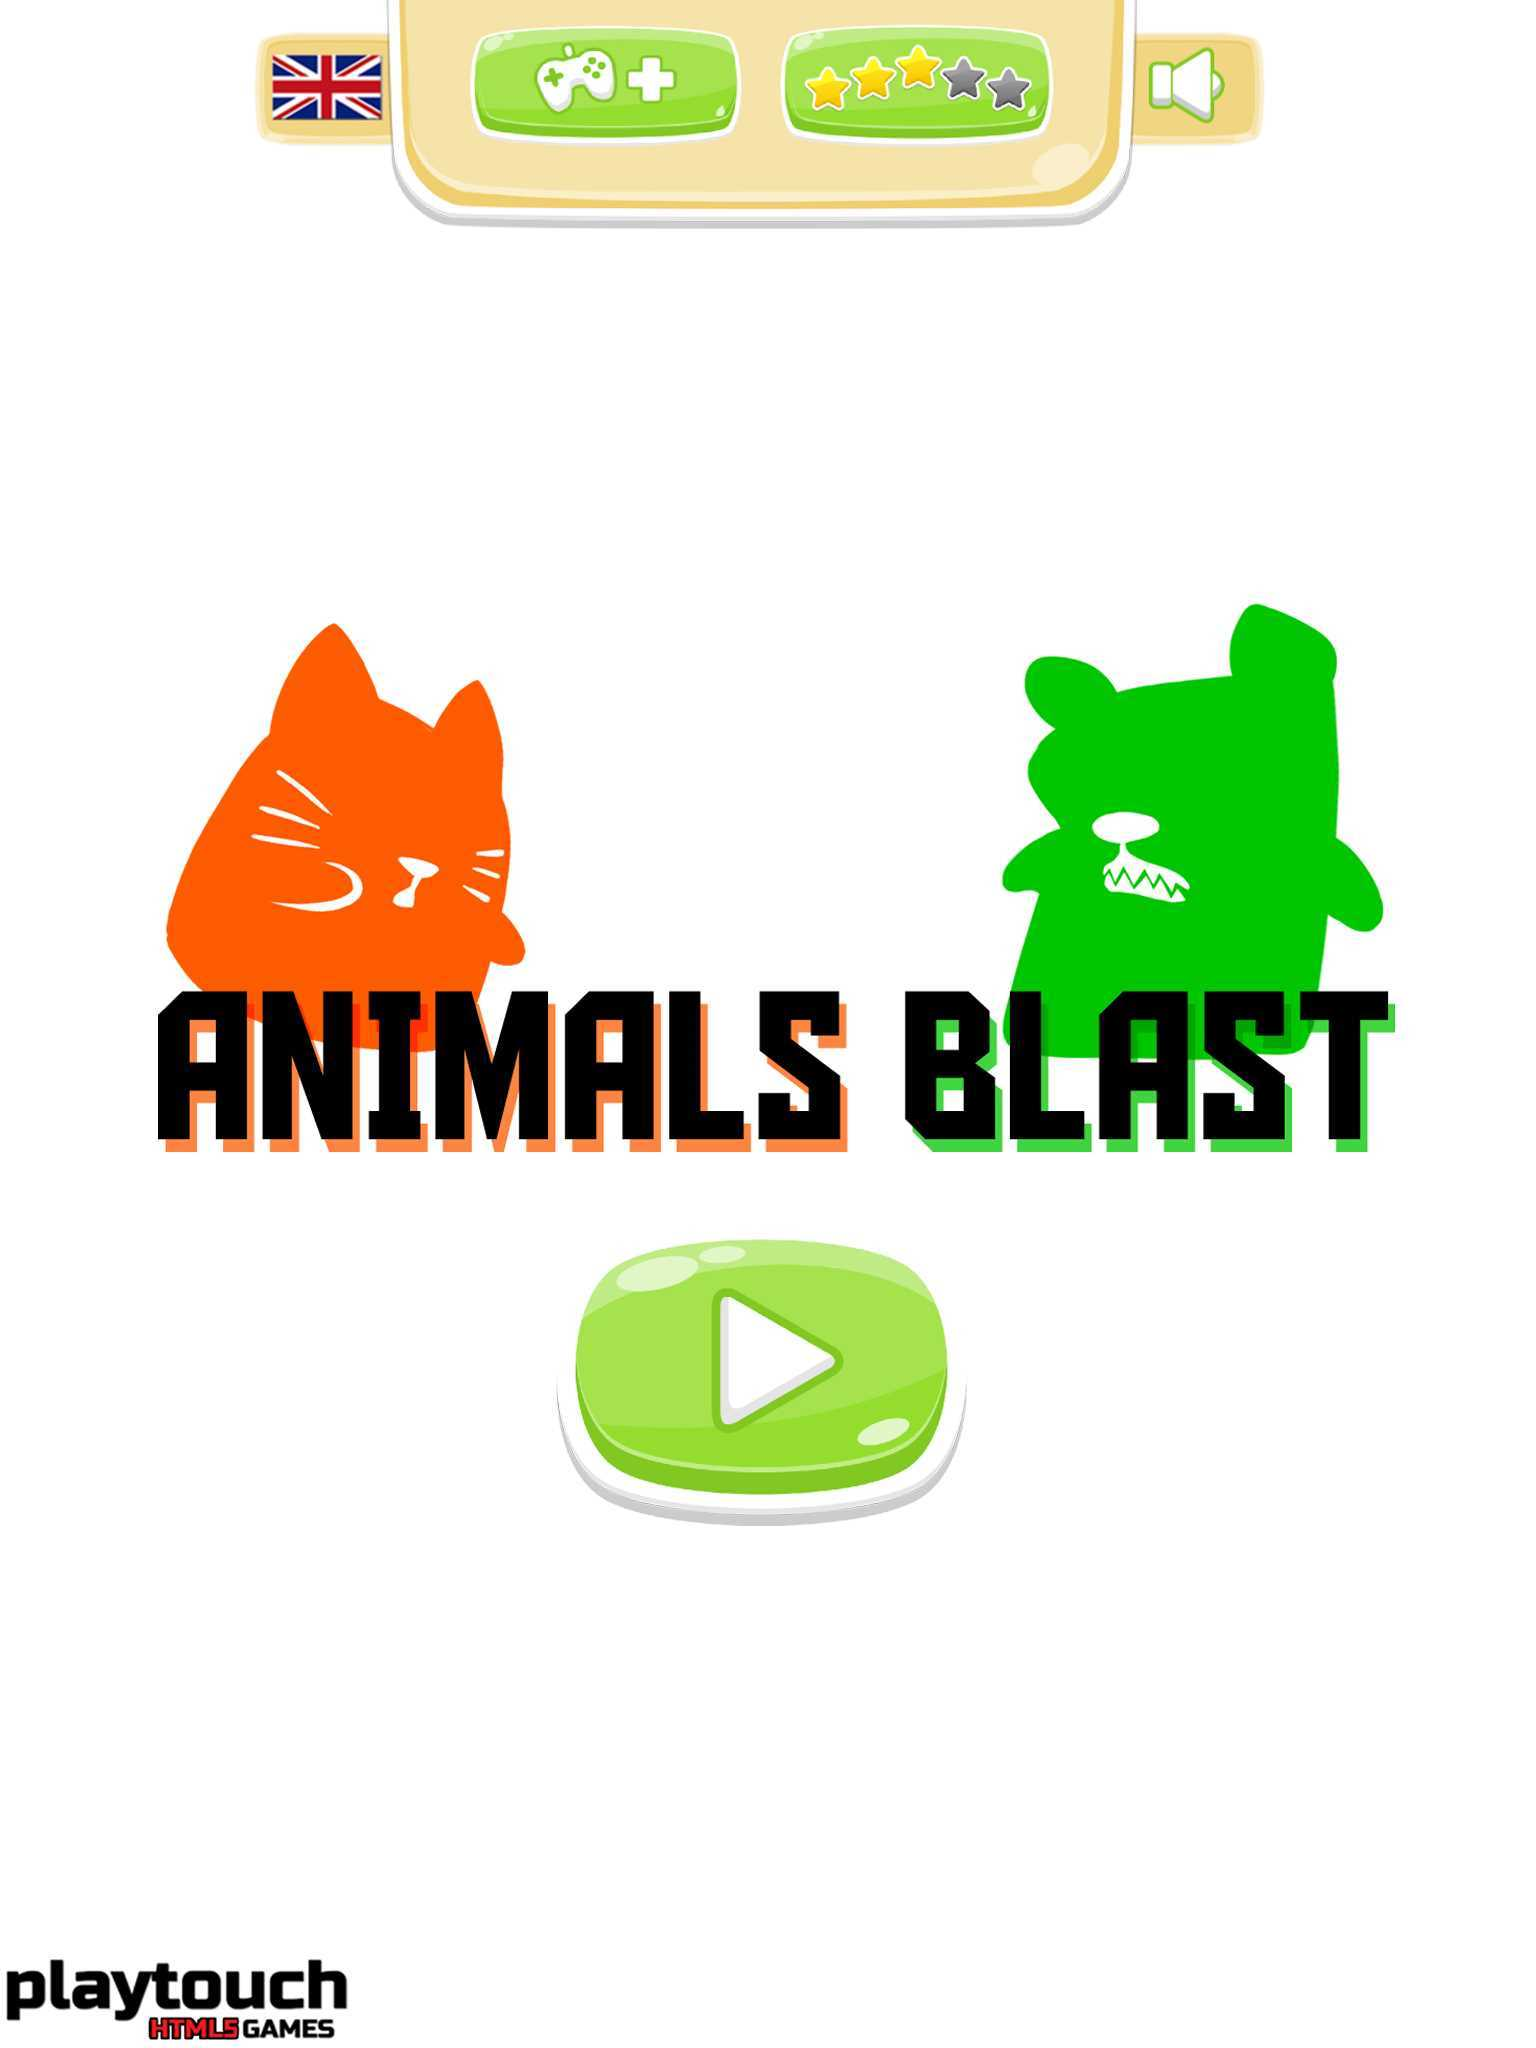 http://gamemoobigcom-92f3.kxcdn.com/Contents/Games/GRXEYY/logo/icon-256.png